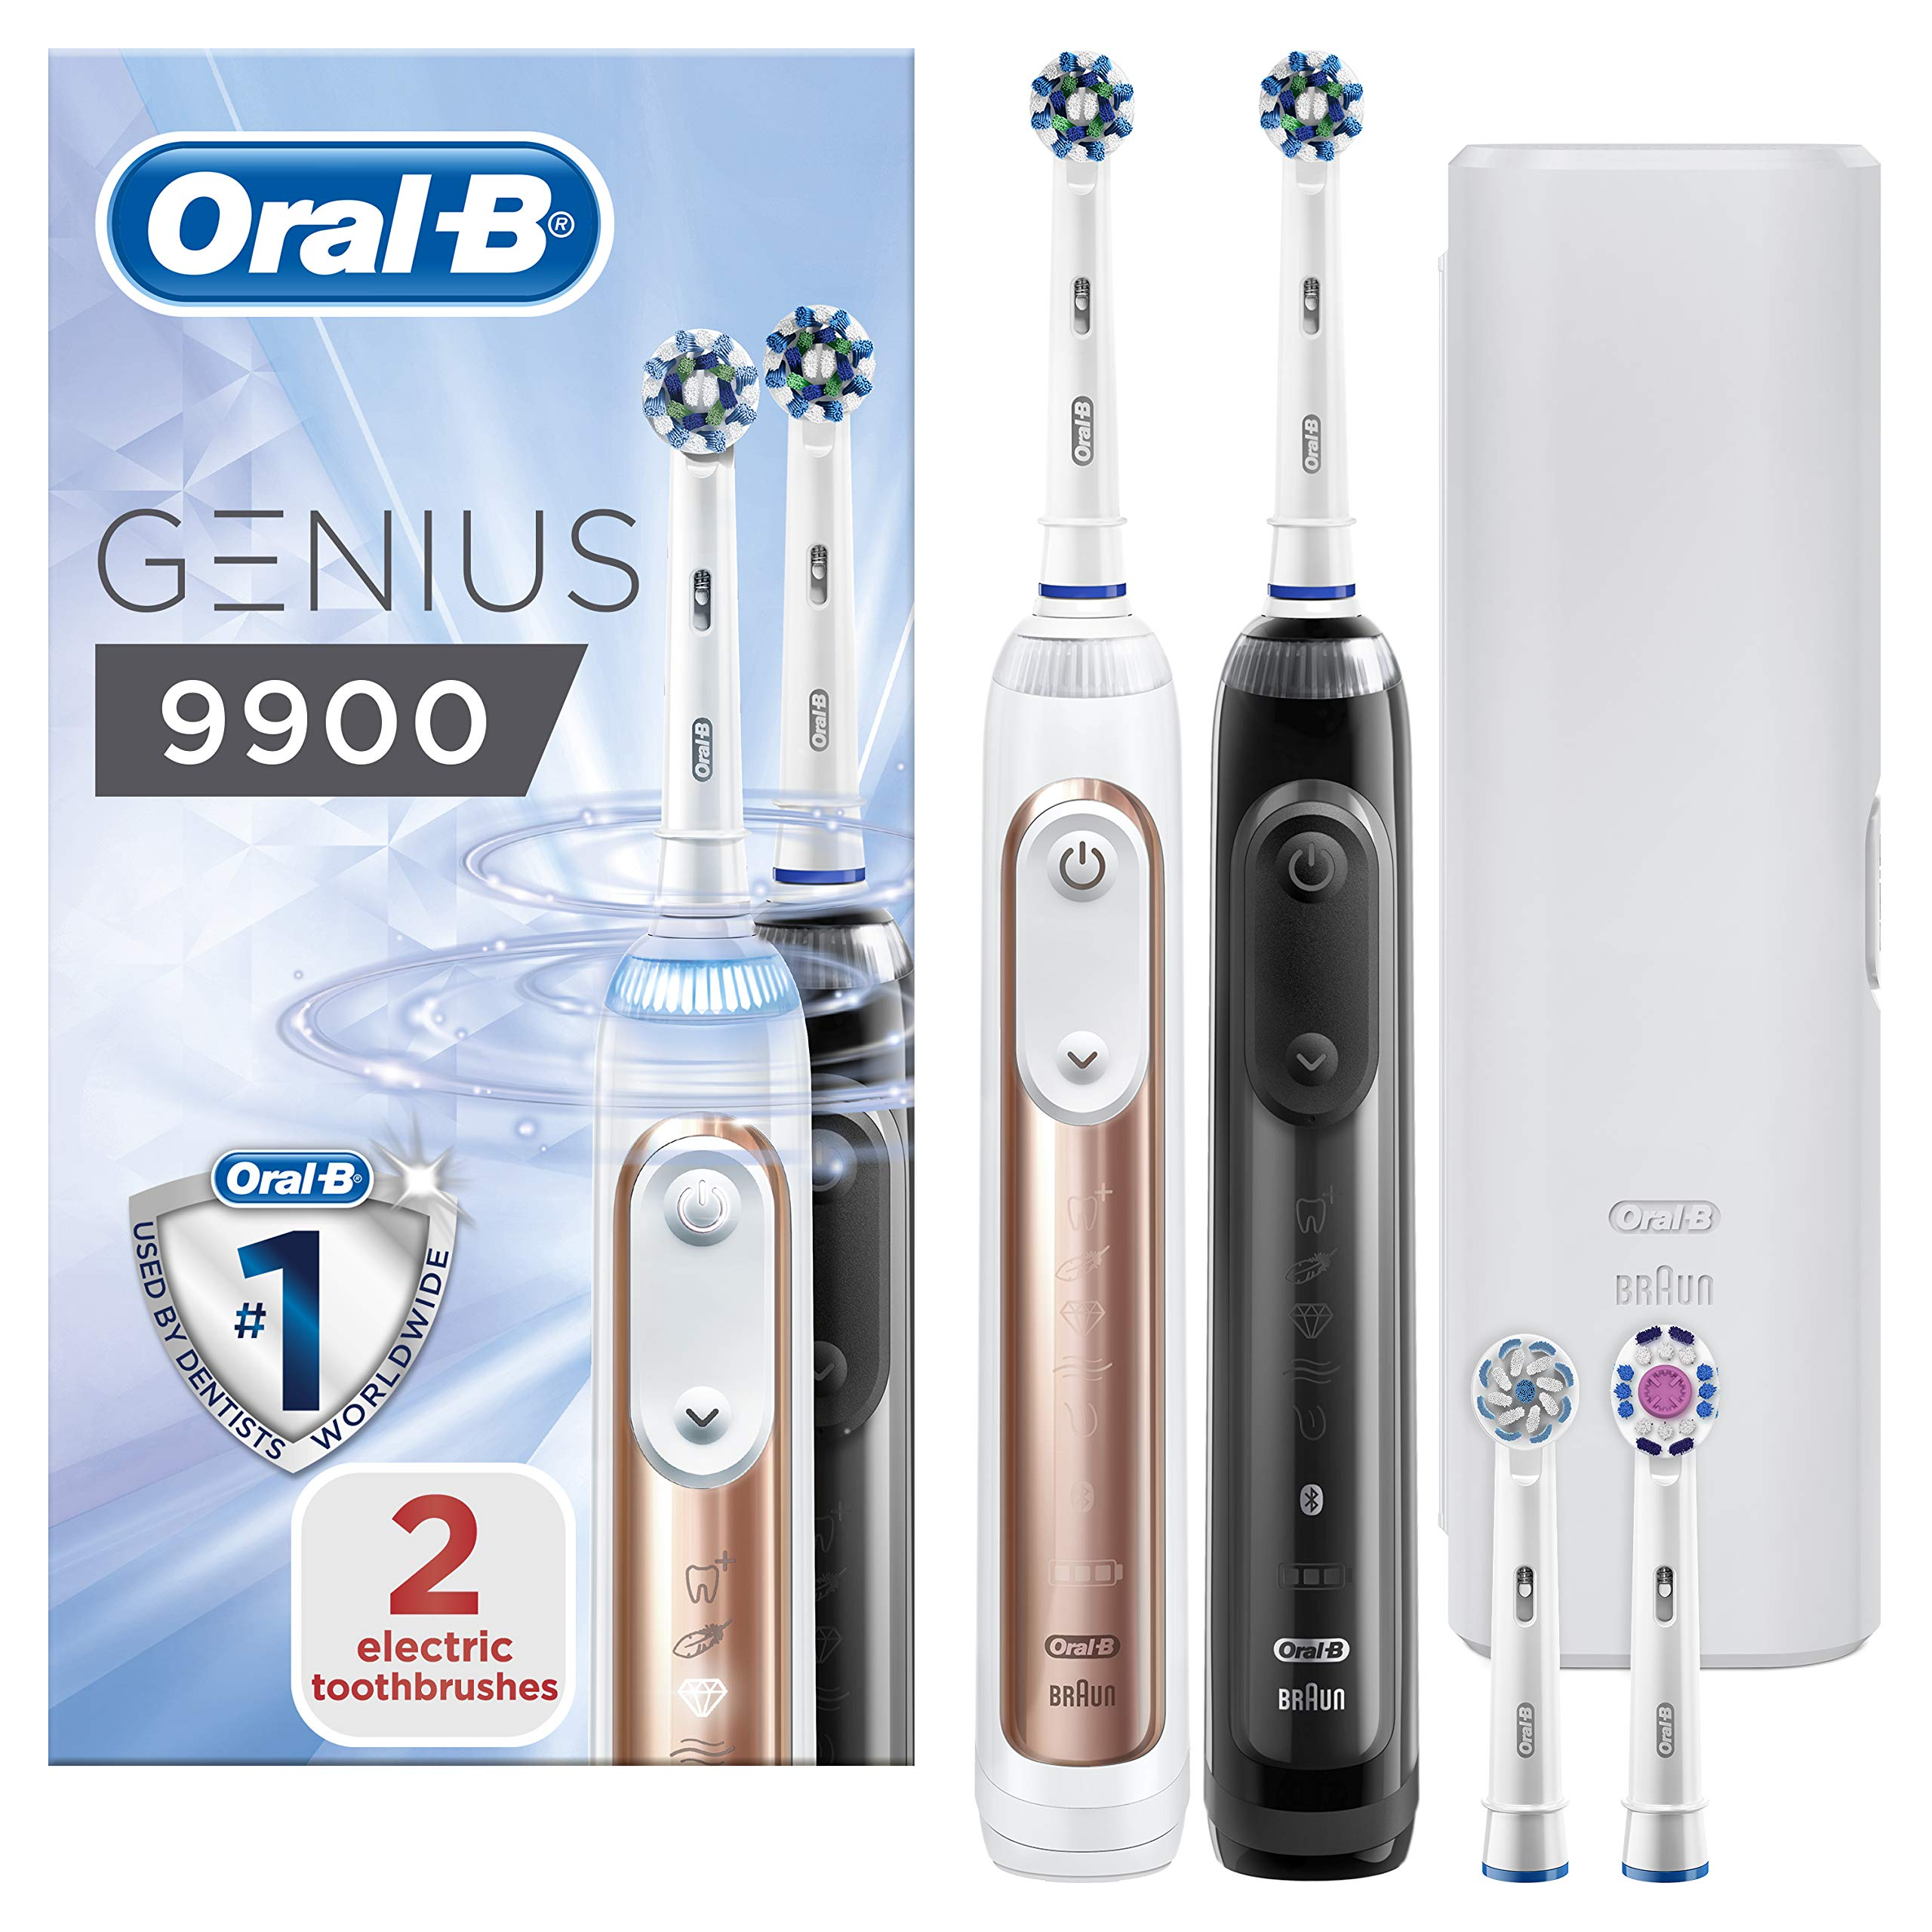 Oral-B Genius 9900 Set of 2 Electric Toothbrushes Rechargeable, 2 Handles Rose Gold and Black, 6 Modes, Pressure Sensor, 4 Toothbrush Heads, Travel Case, 2 Pin UK Plug, Gift for Men/Women